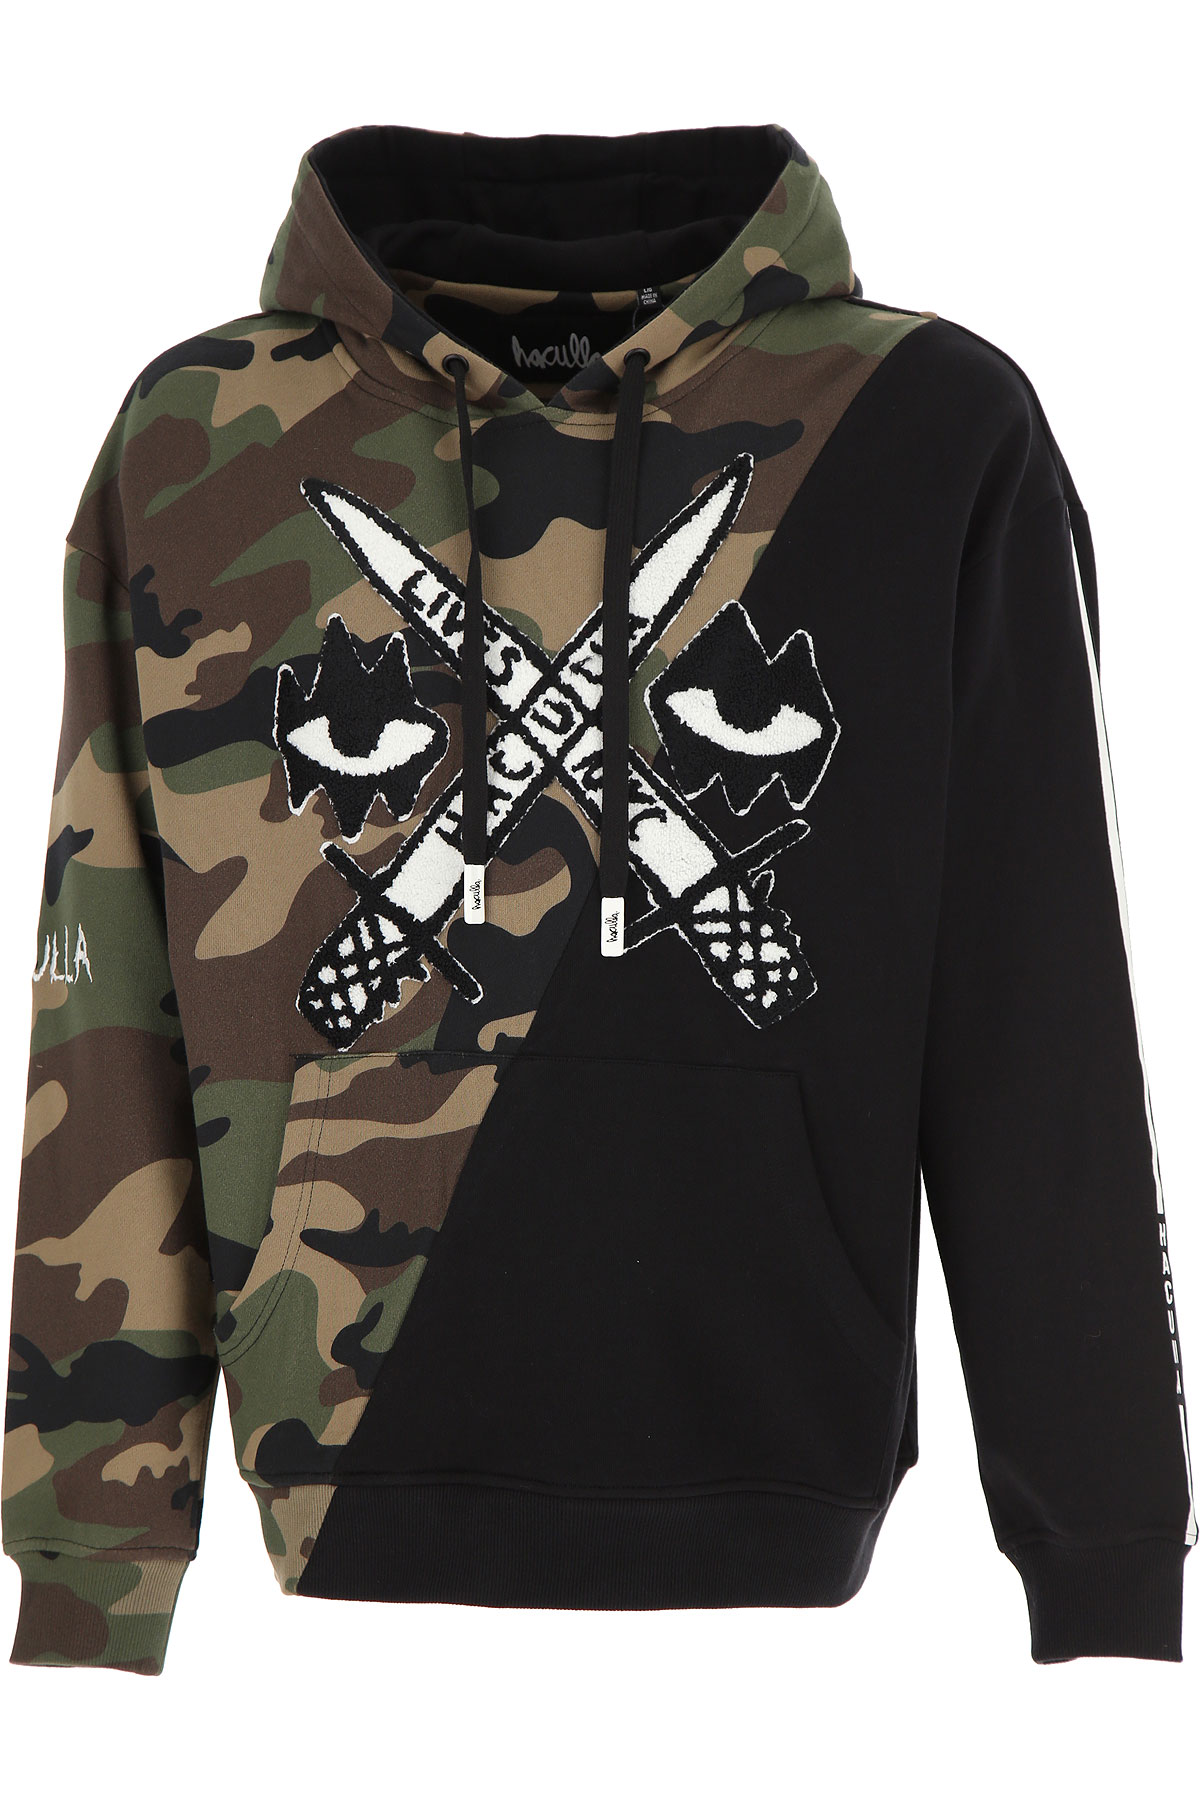 Haculla Sweatshirt for Men On Sale, camouflage, Cotton, 2019, S XS